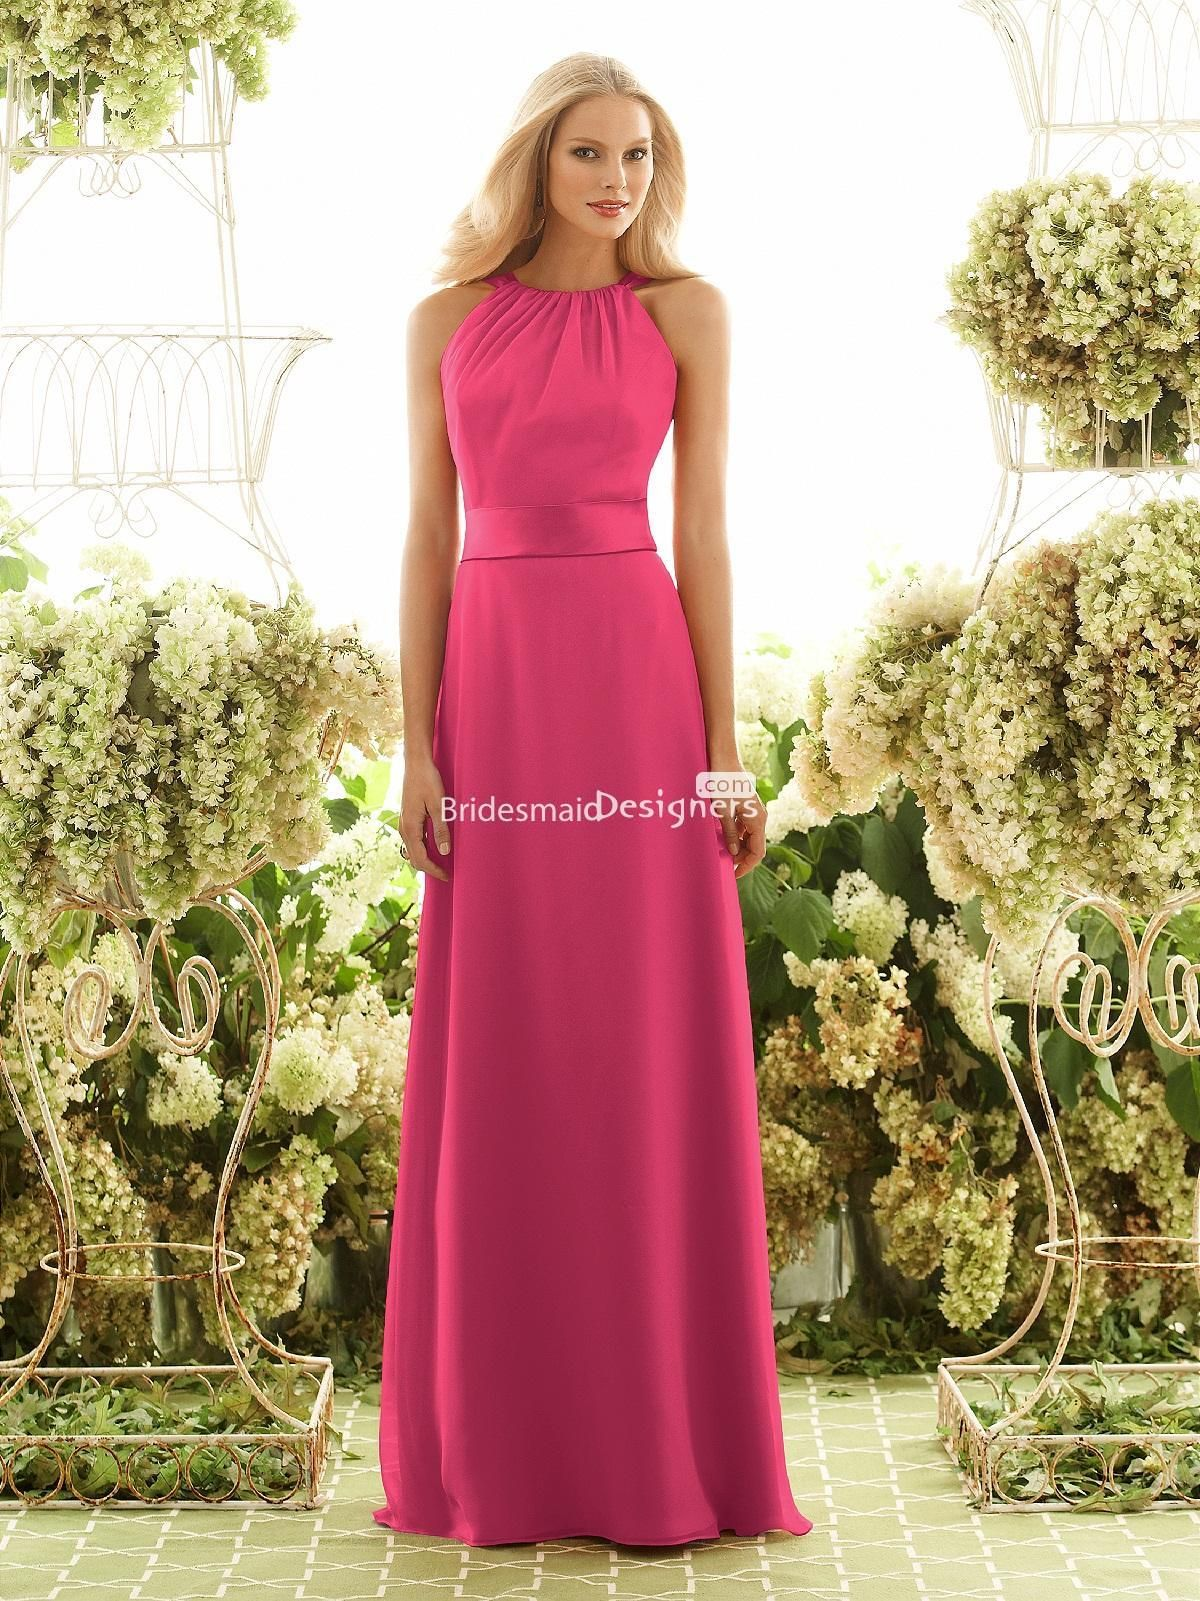 Stunning fuschia halter sleeveless long chiffon bridesmaid dress stunning fuschia halter sleeveless long chiffon bridesmaid dress with satin sash and bow on back ombrellifo Gallery